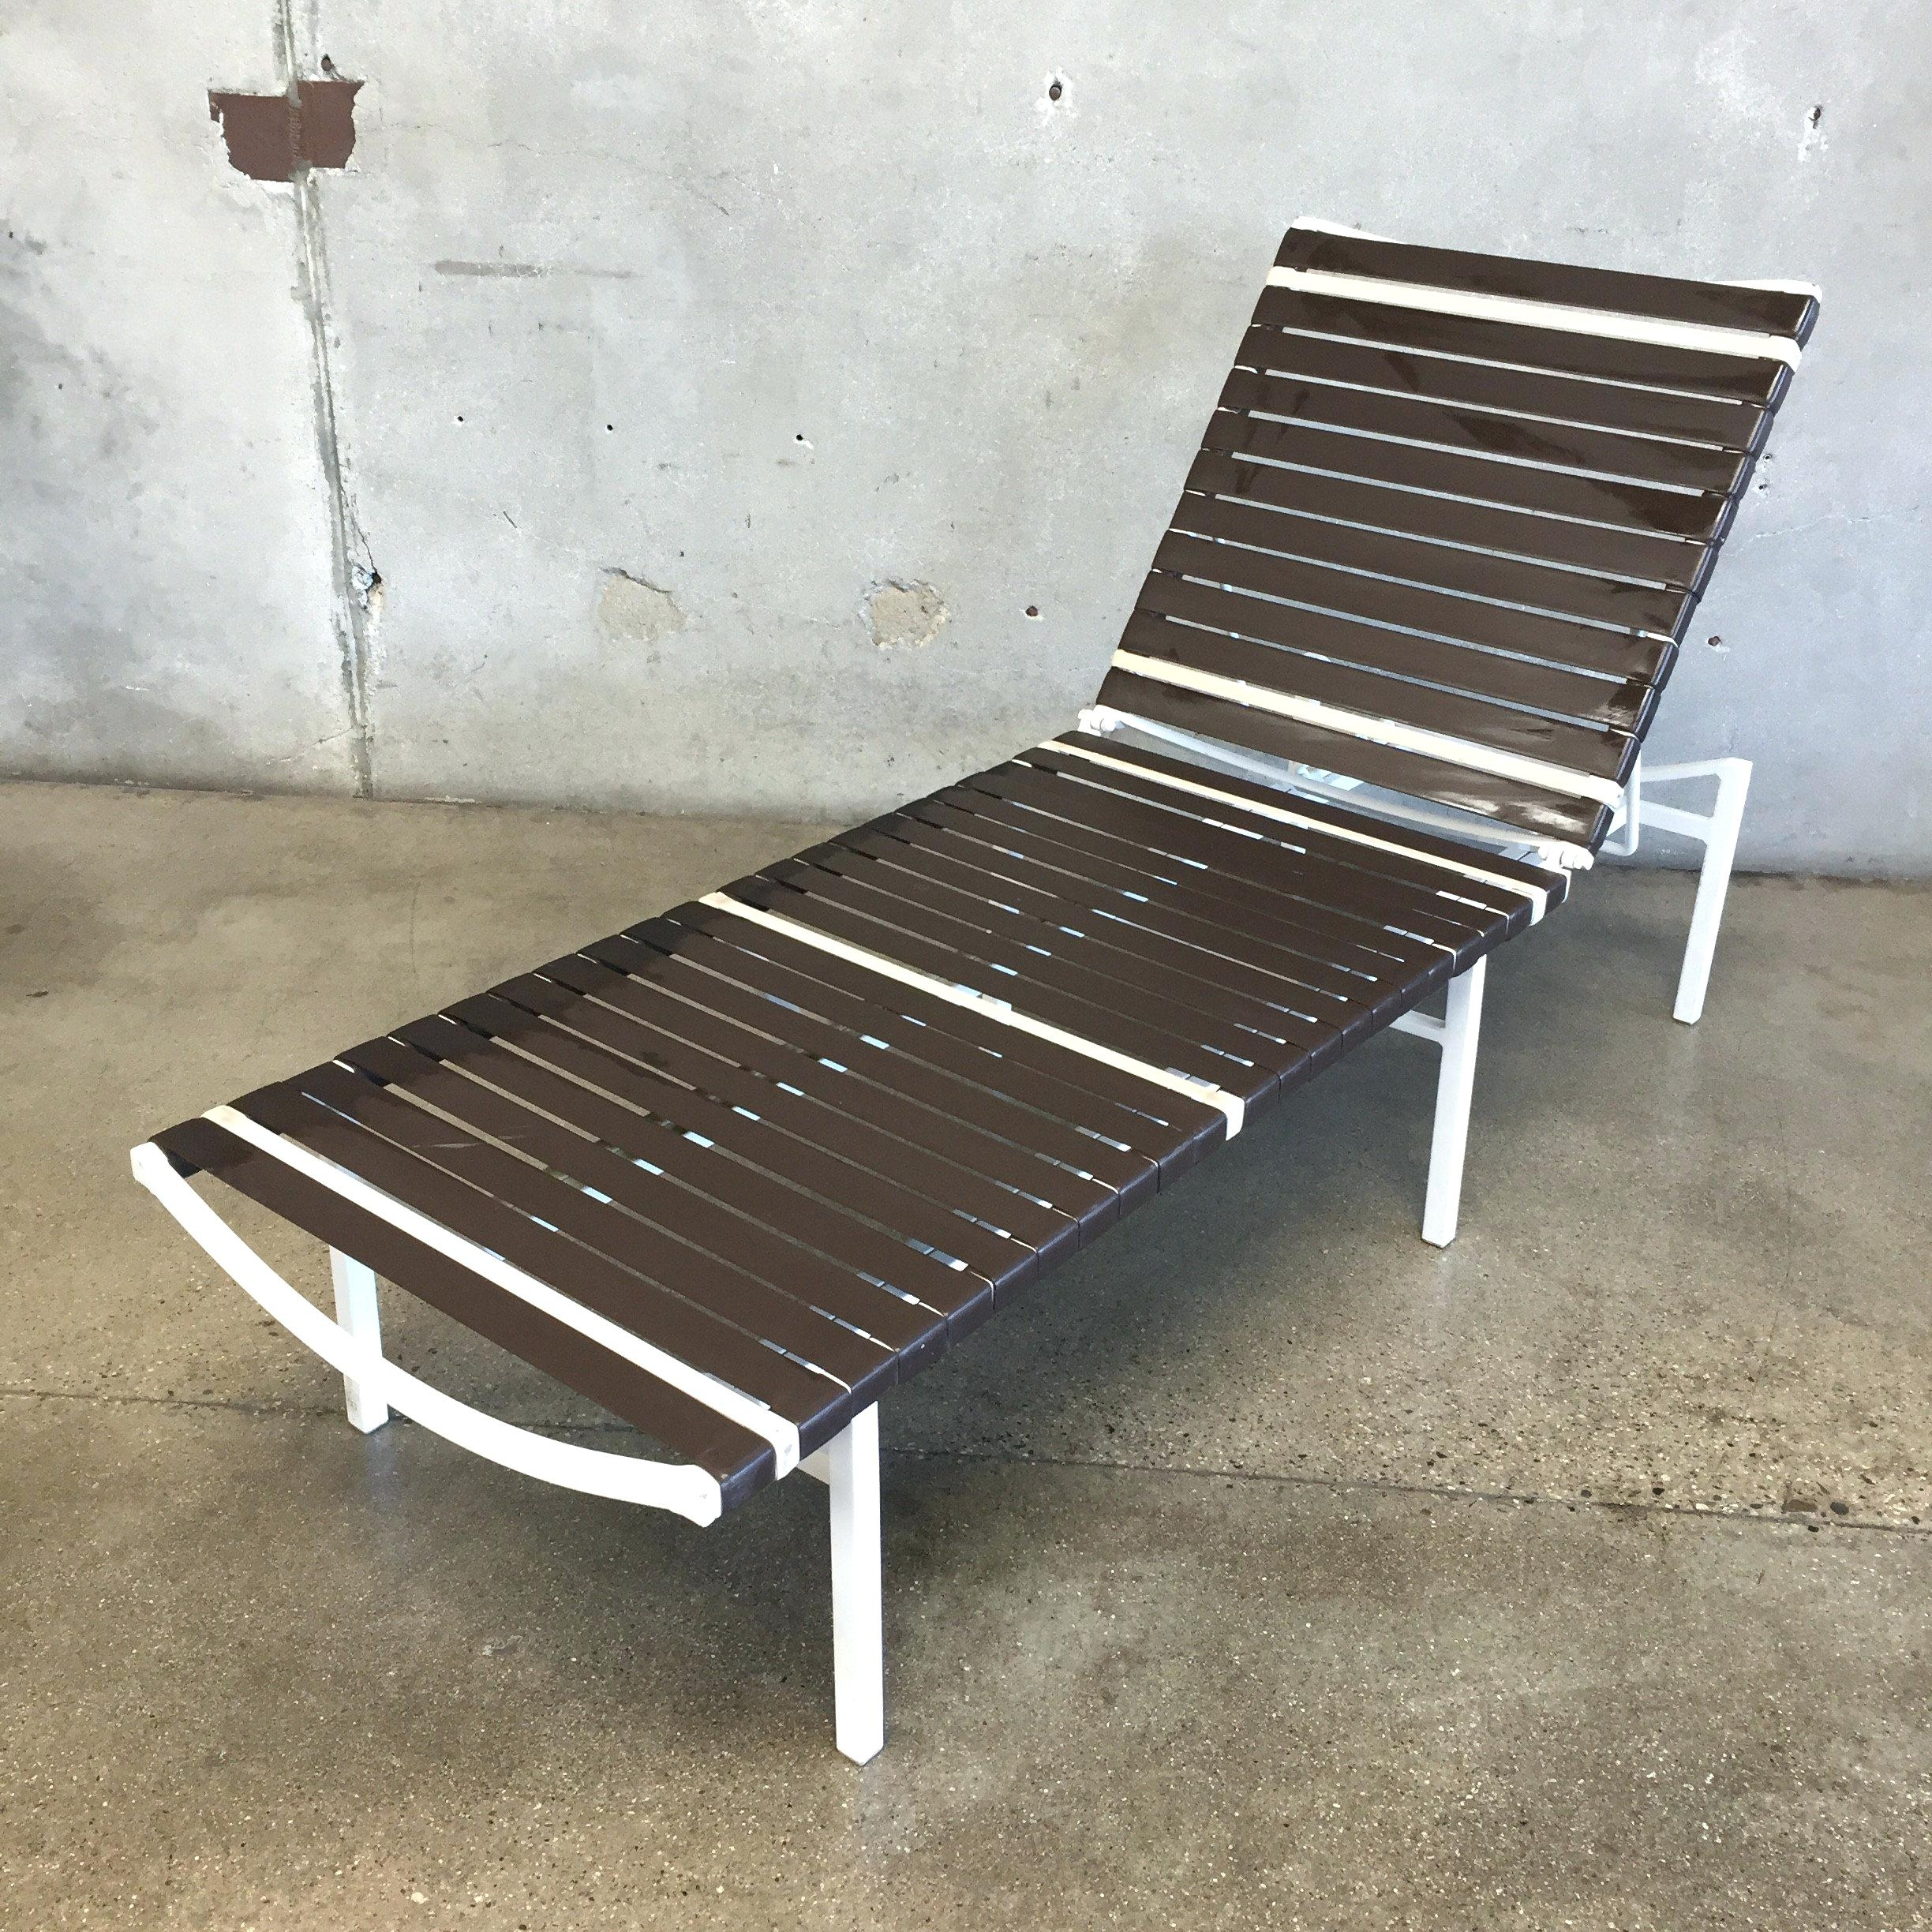 Brown Jordan Chaises Inside Most Recently Released Brown Jordan Chaise Lounge Chairs • Lounge Chairs Ideas (View 4 of 15)